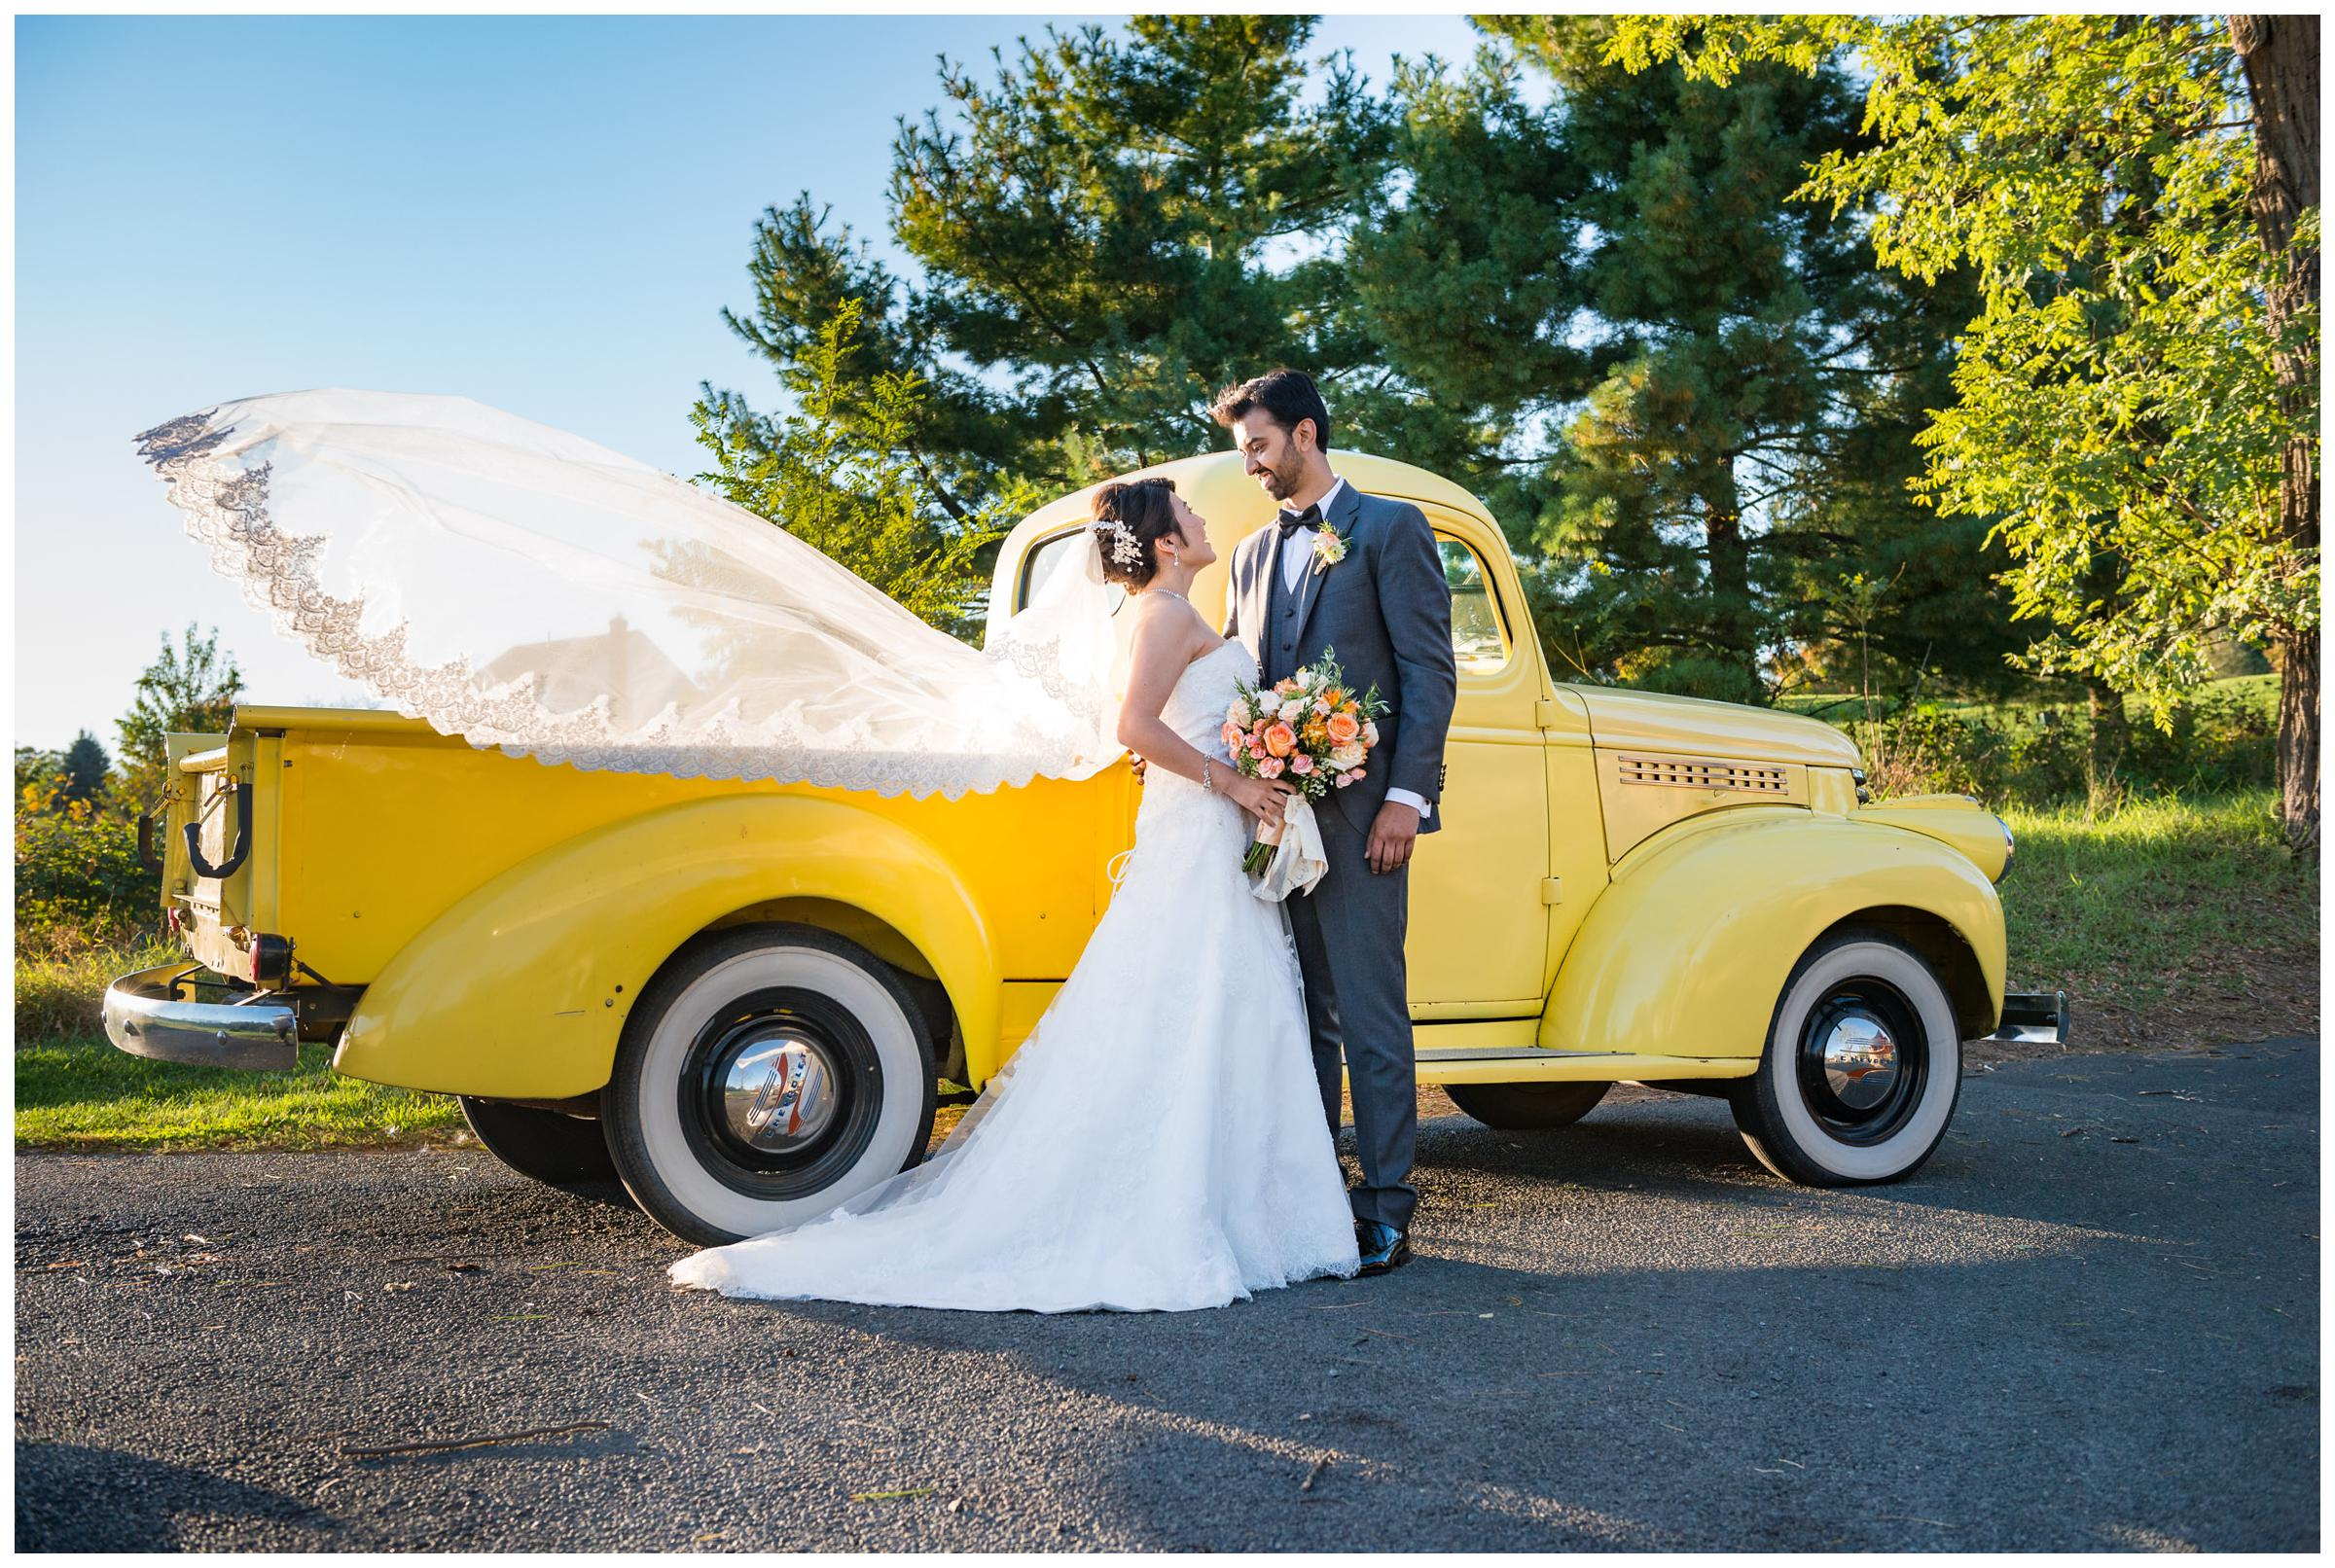 Bride and groom with vintage yellow truck and veil blowing in wind.